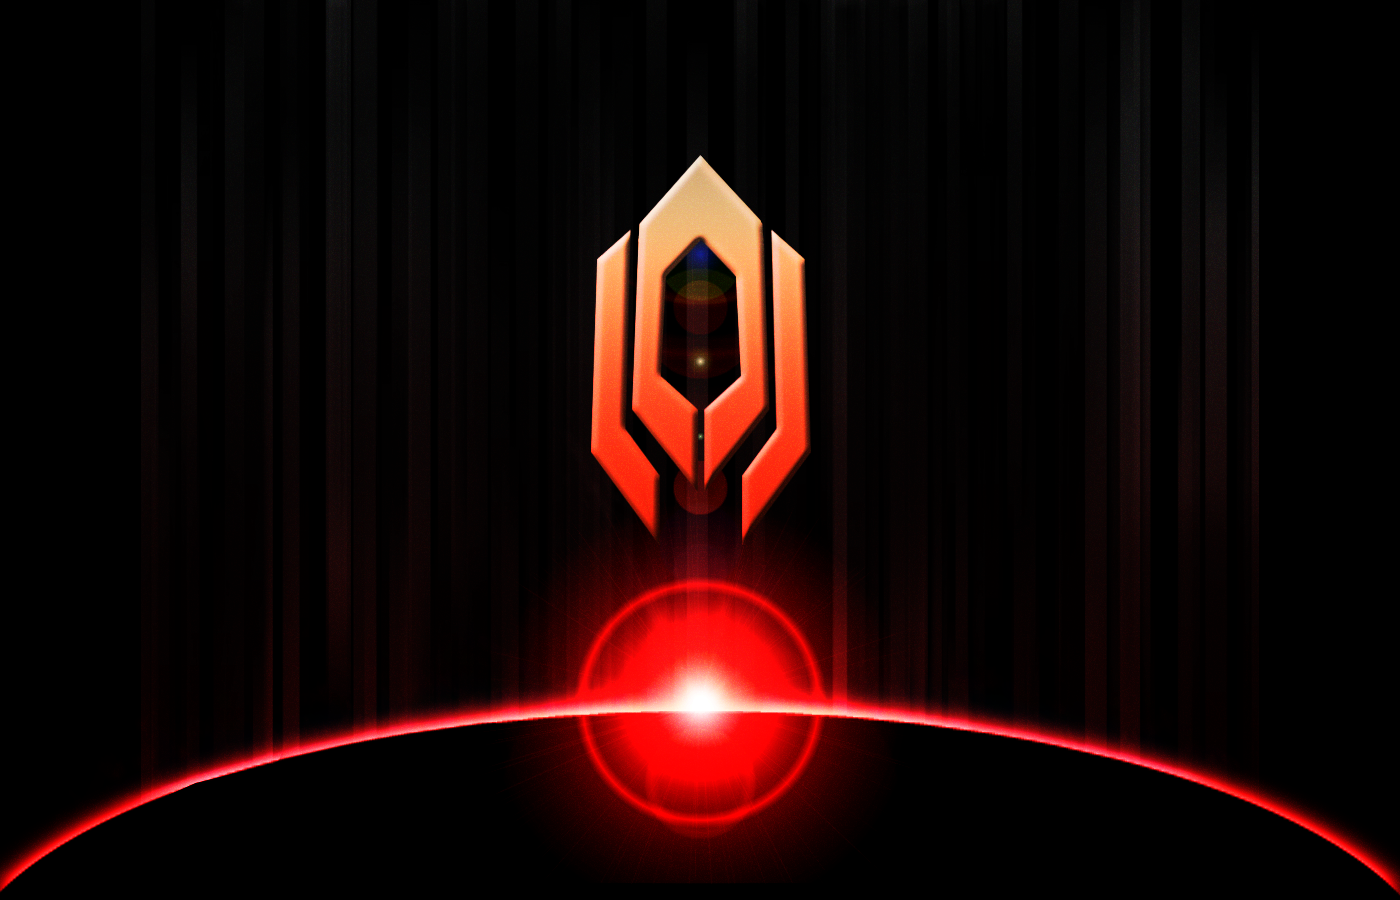 Mass_Effect_Wallpaper_Cerberus_by_RayzorFlash.png